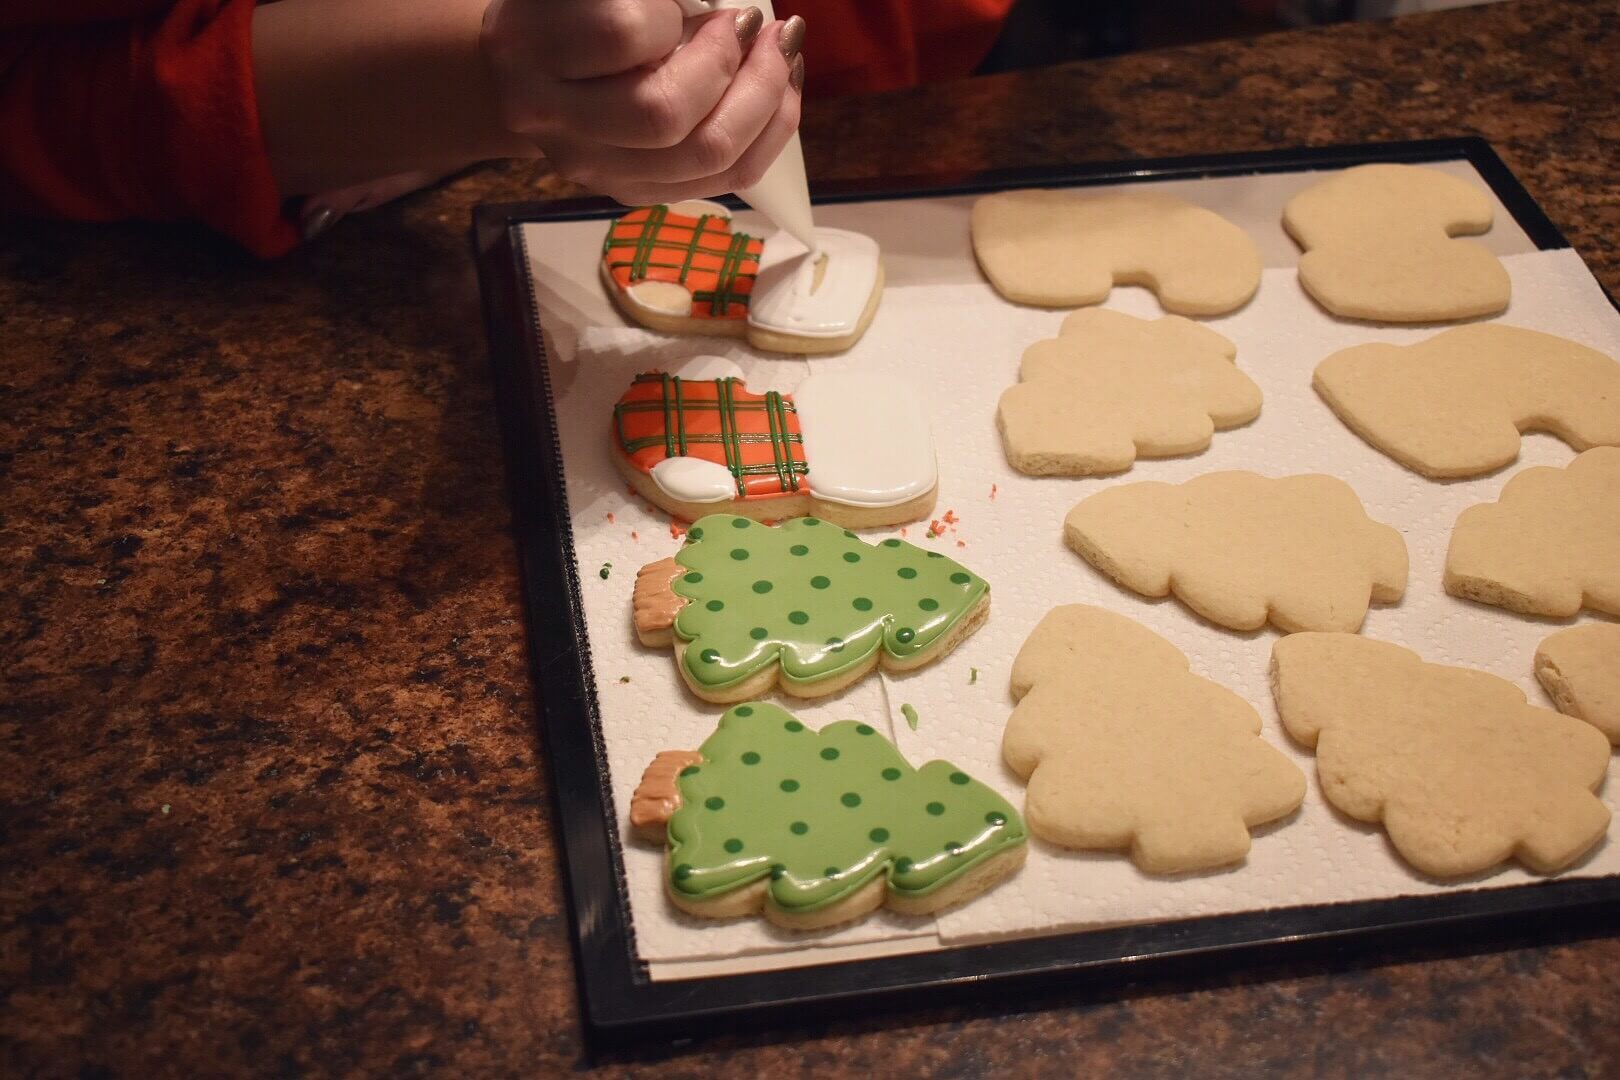 Decorating cookies on a tray